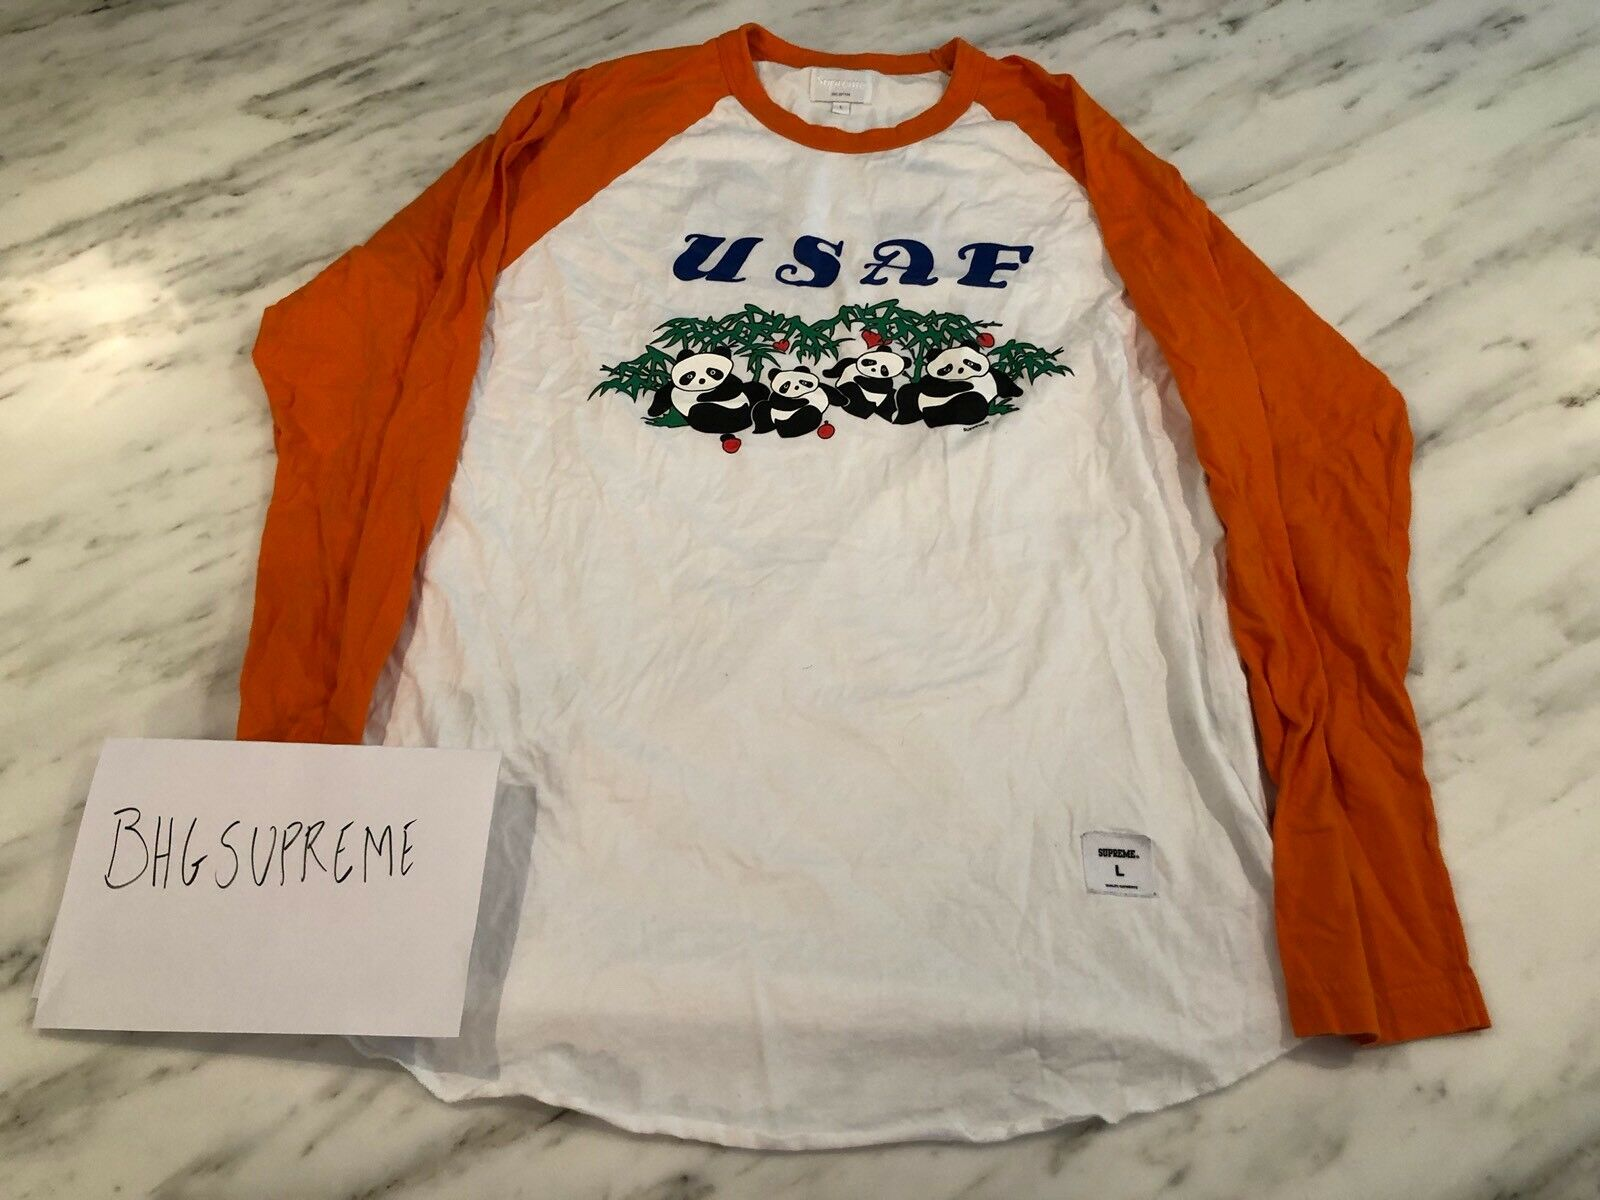 Supreme Usaf Panda Basball Tshirt Shirt Graphic orange 44 New York Nyc